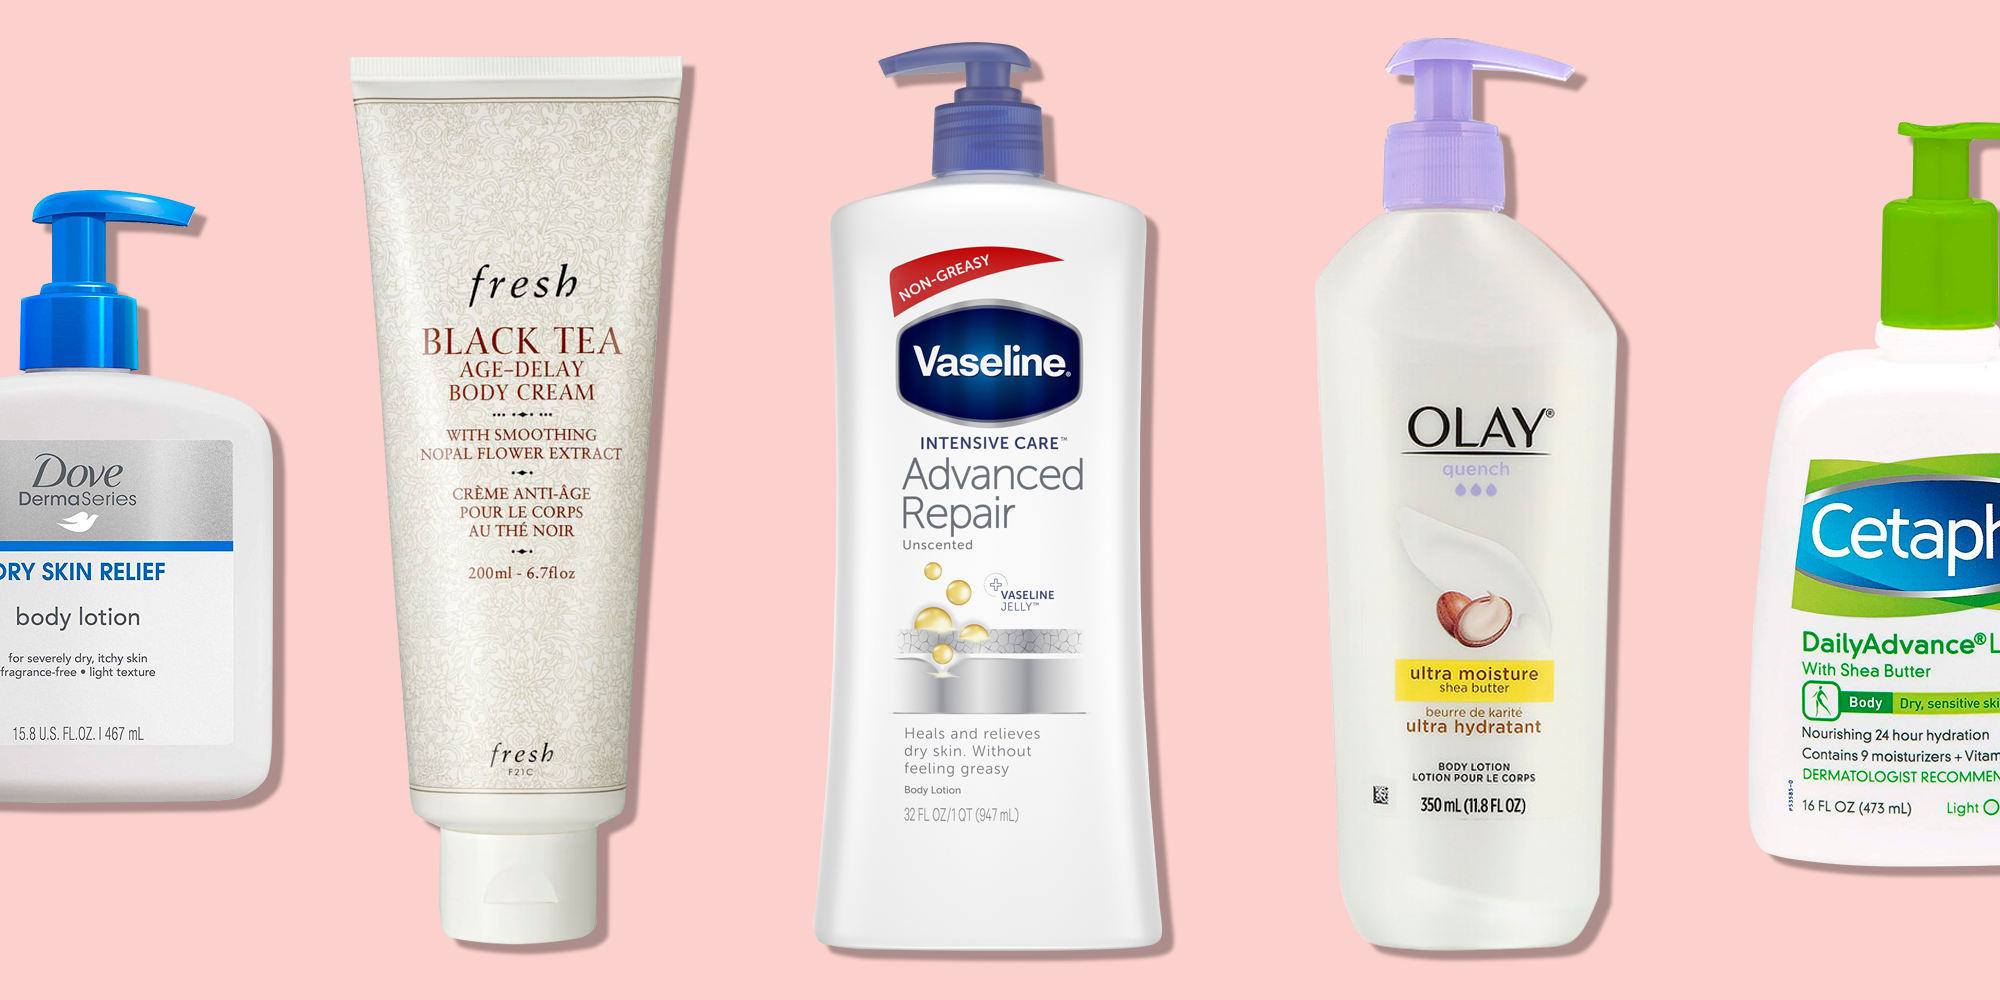 8 Best Body Lotions 8 - Body Creams & Butters to Moisturize